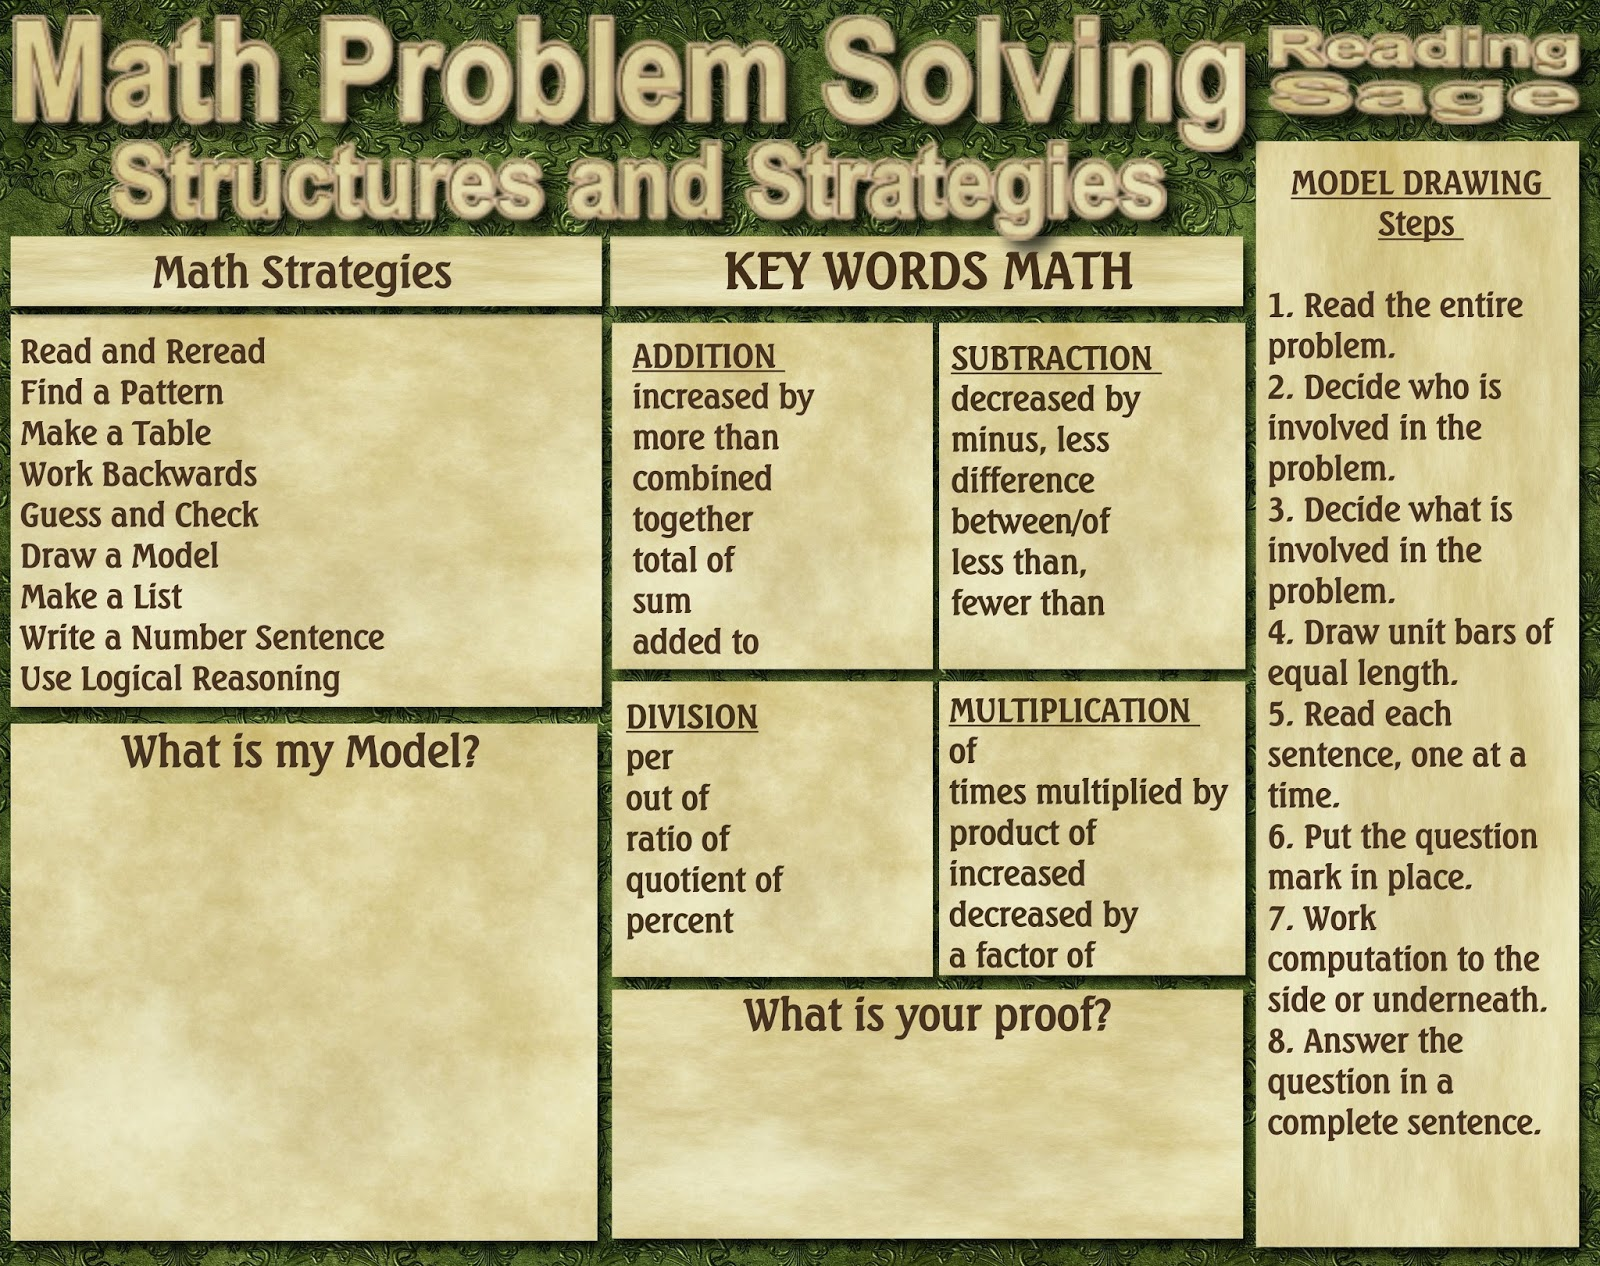 Math problem solving questions and answers